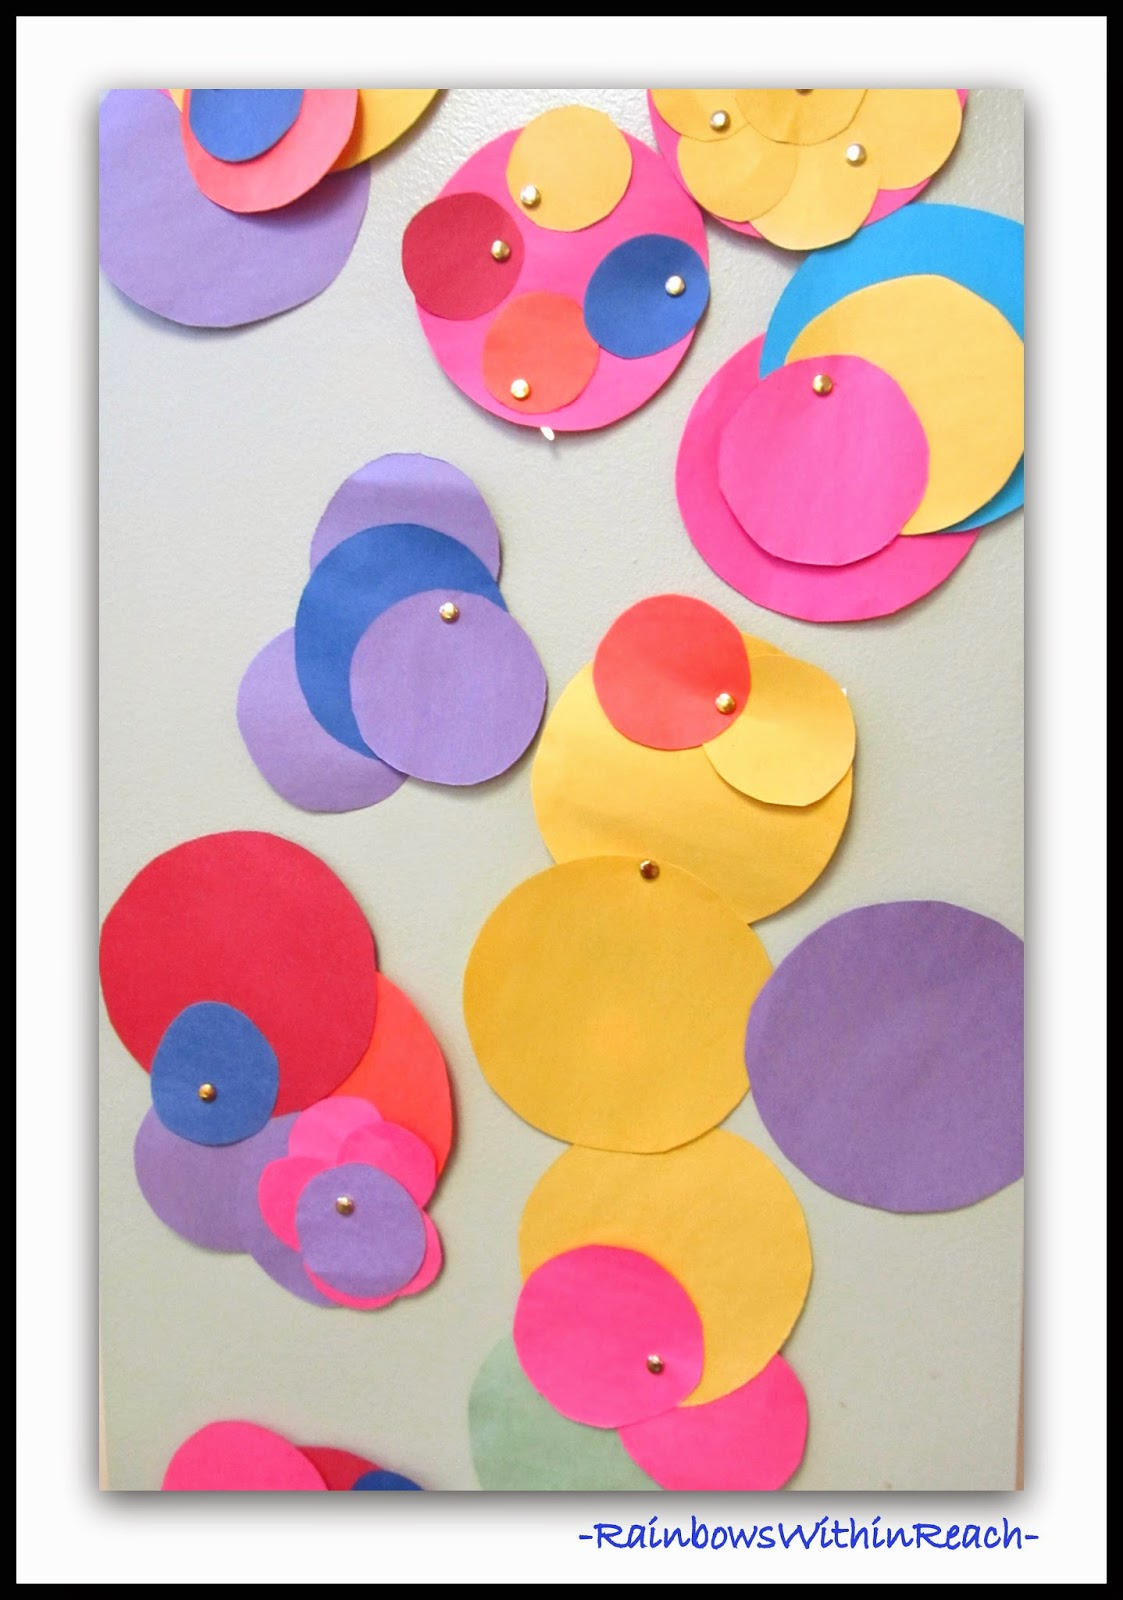 AUTHENTIC Art Work By Preschoolers Exploring Circles Via PreK K Sharing